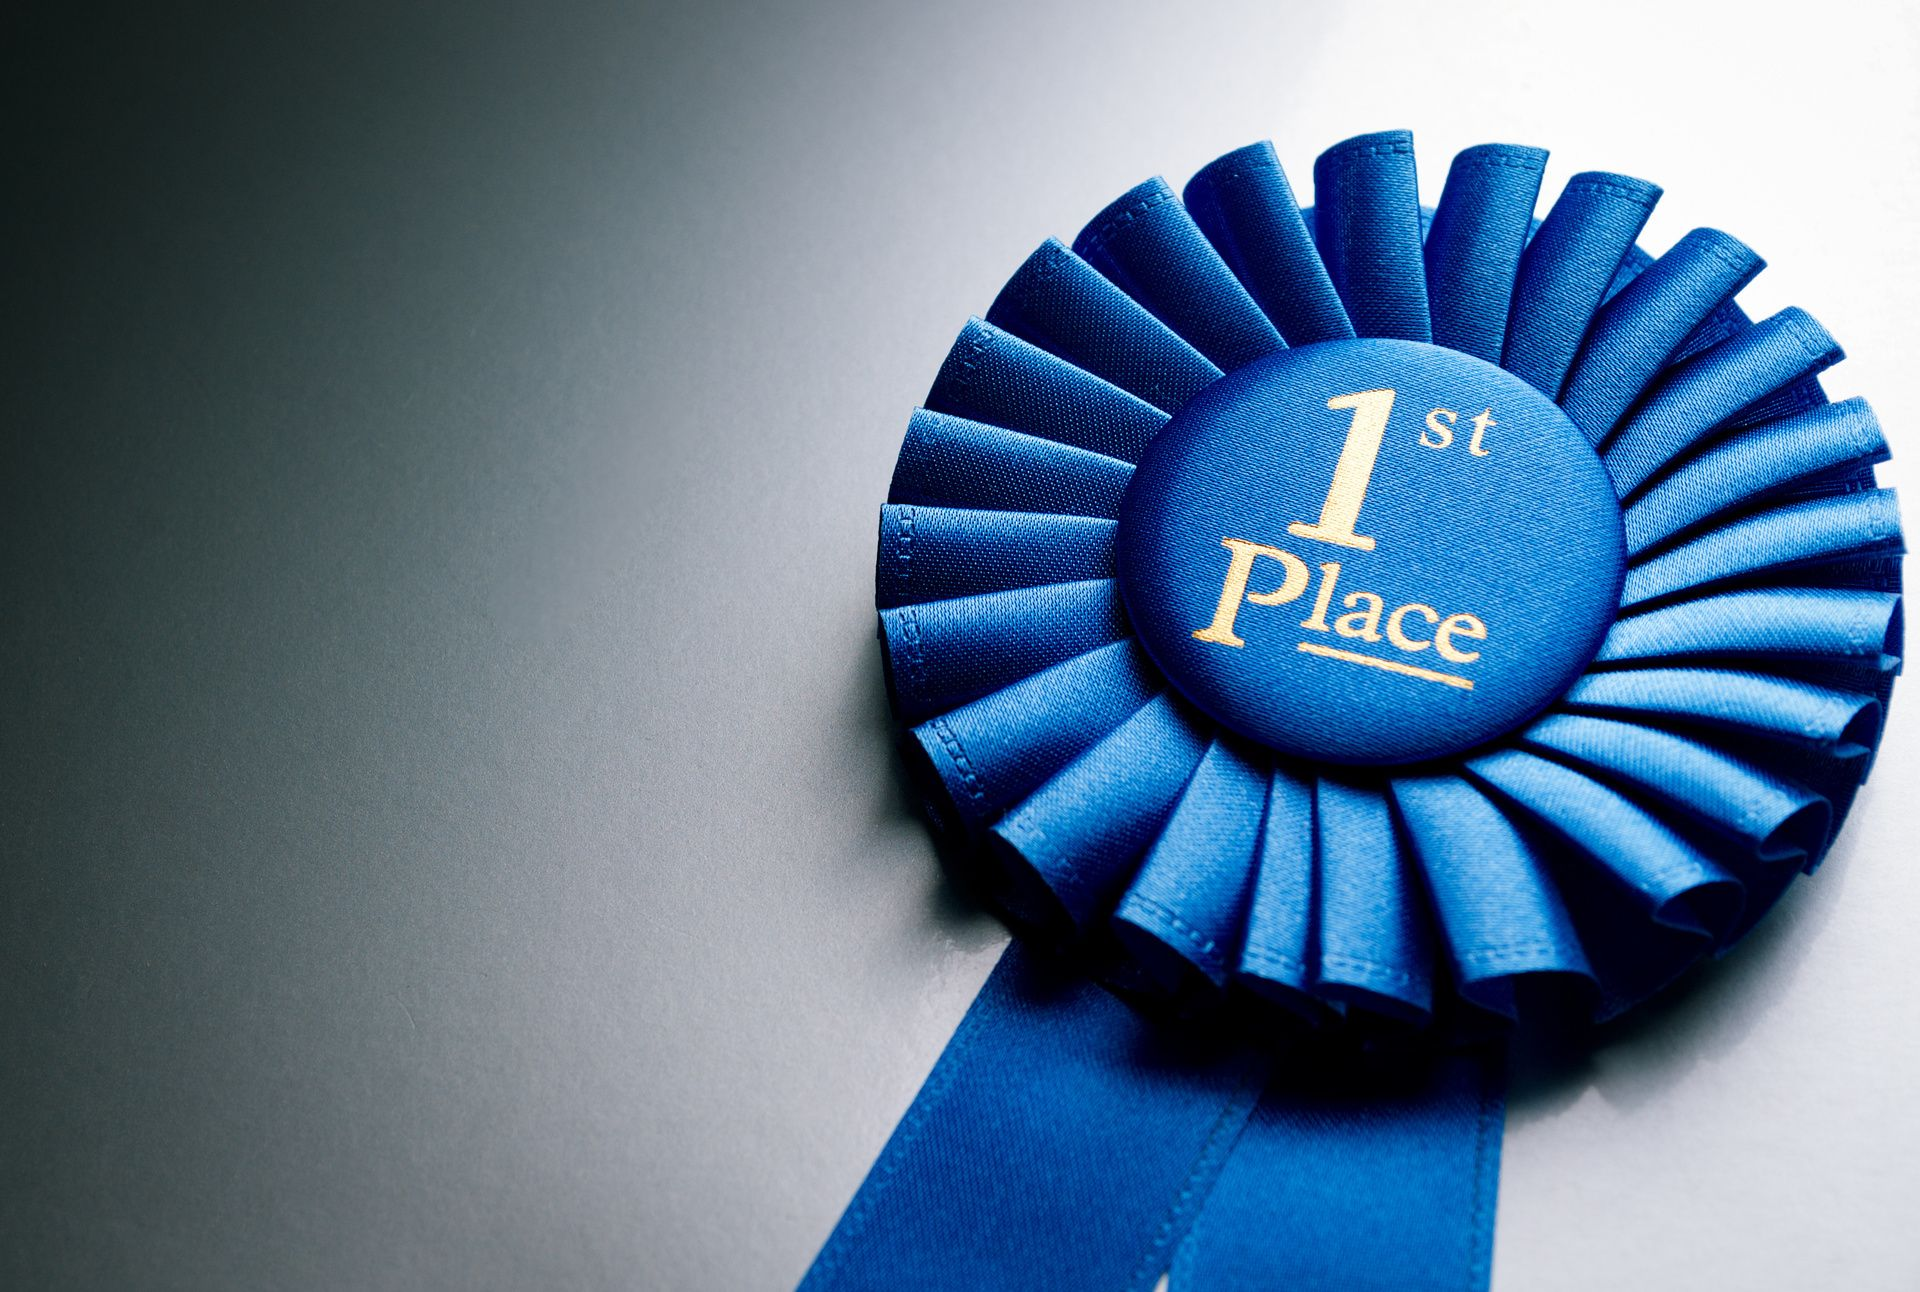 Blue first place winner rosette or badge from pleated ribbon with central text to be awarded to the winner of a competition on a graduated grey background